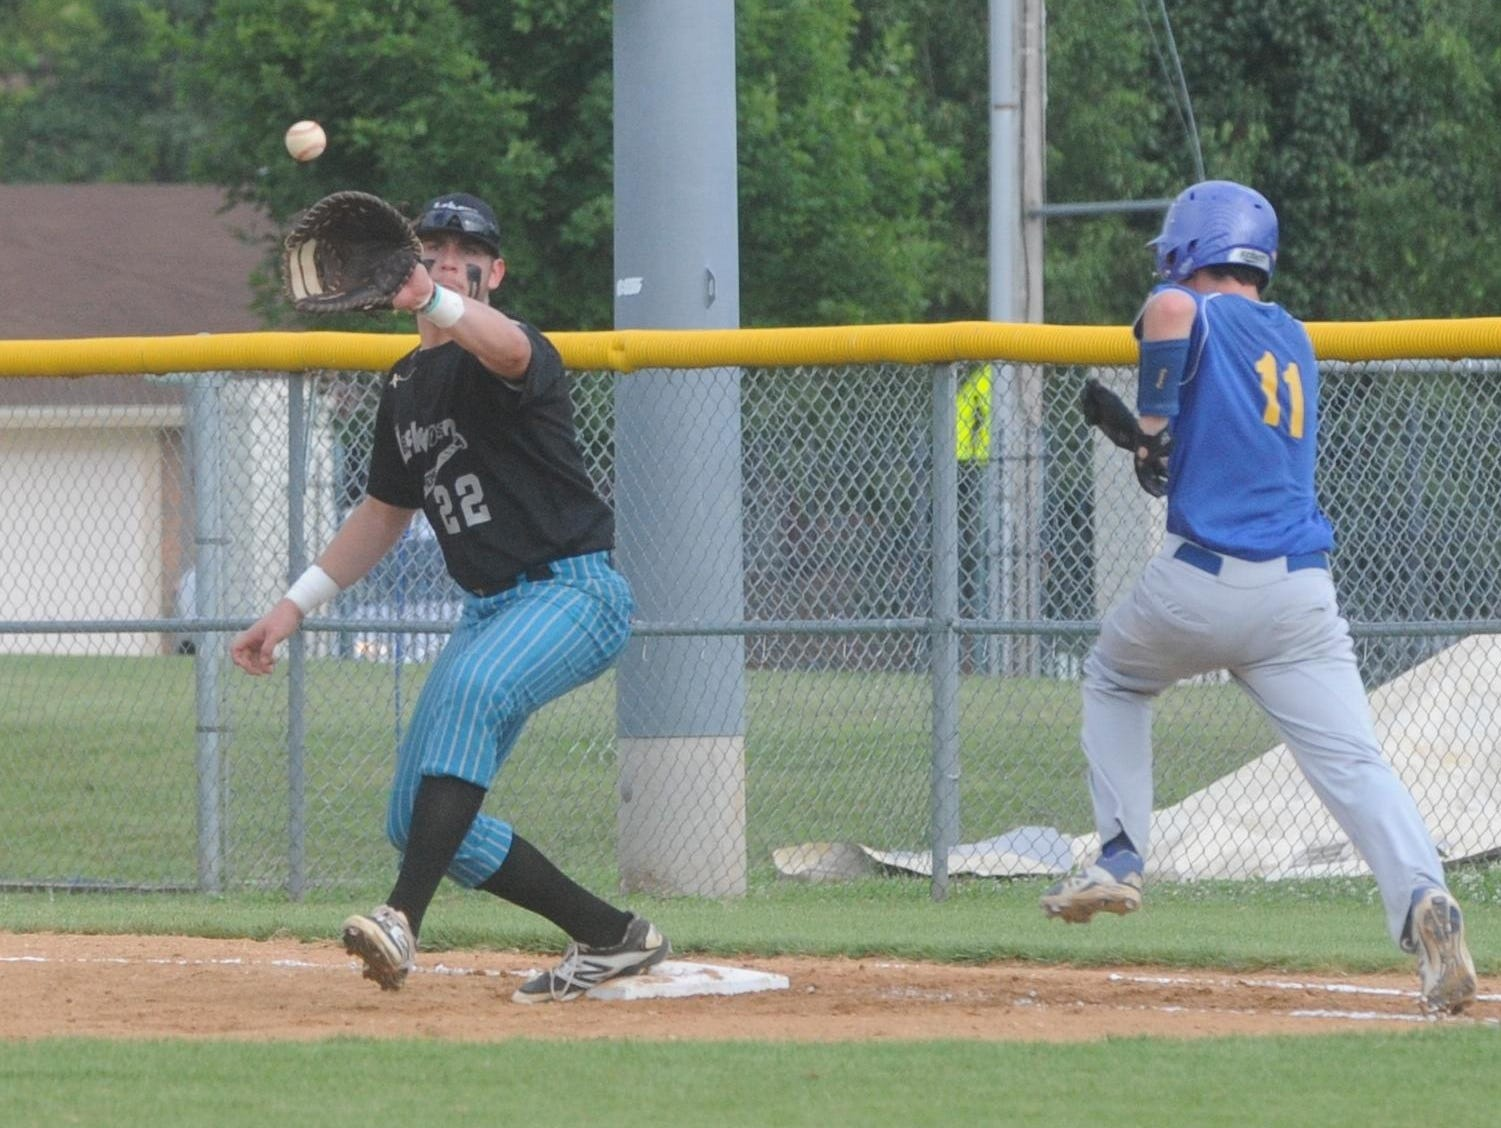 Lockeroom first baseman Sky-Lar Culver receives a throw to force out a Harrison batter during recent action at Cooper Park. Lockeroom swept a Zone 2 doubleheader from the Blytheville Casons on Saturday at Blytheville.